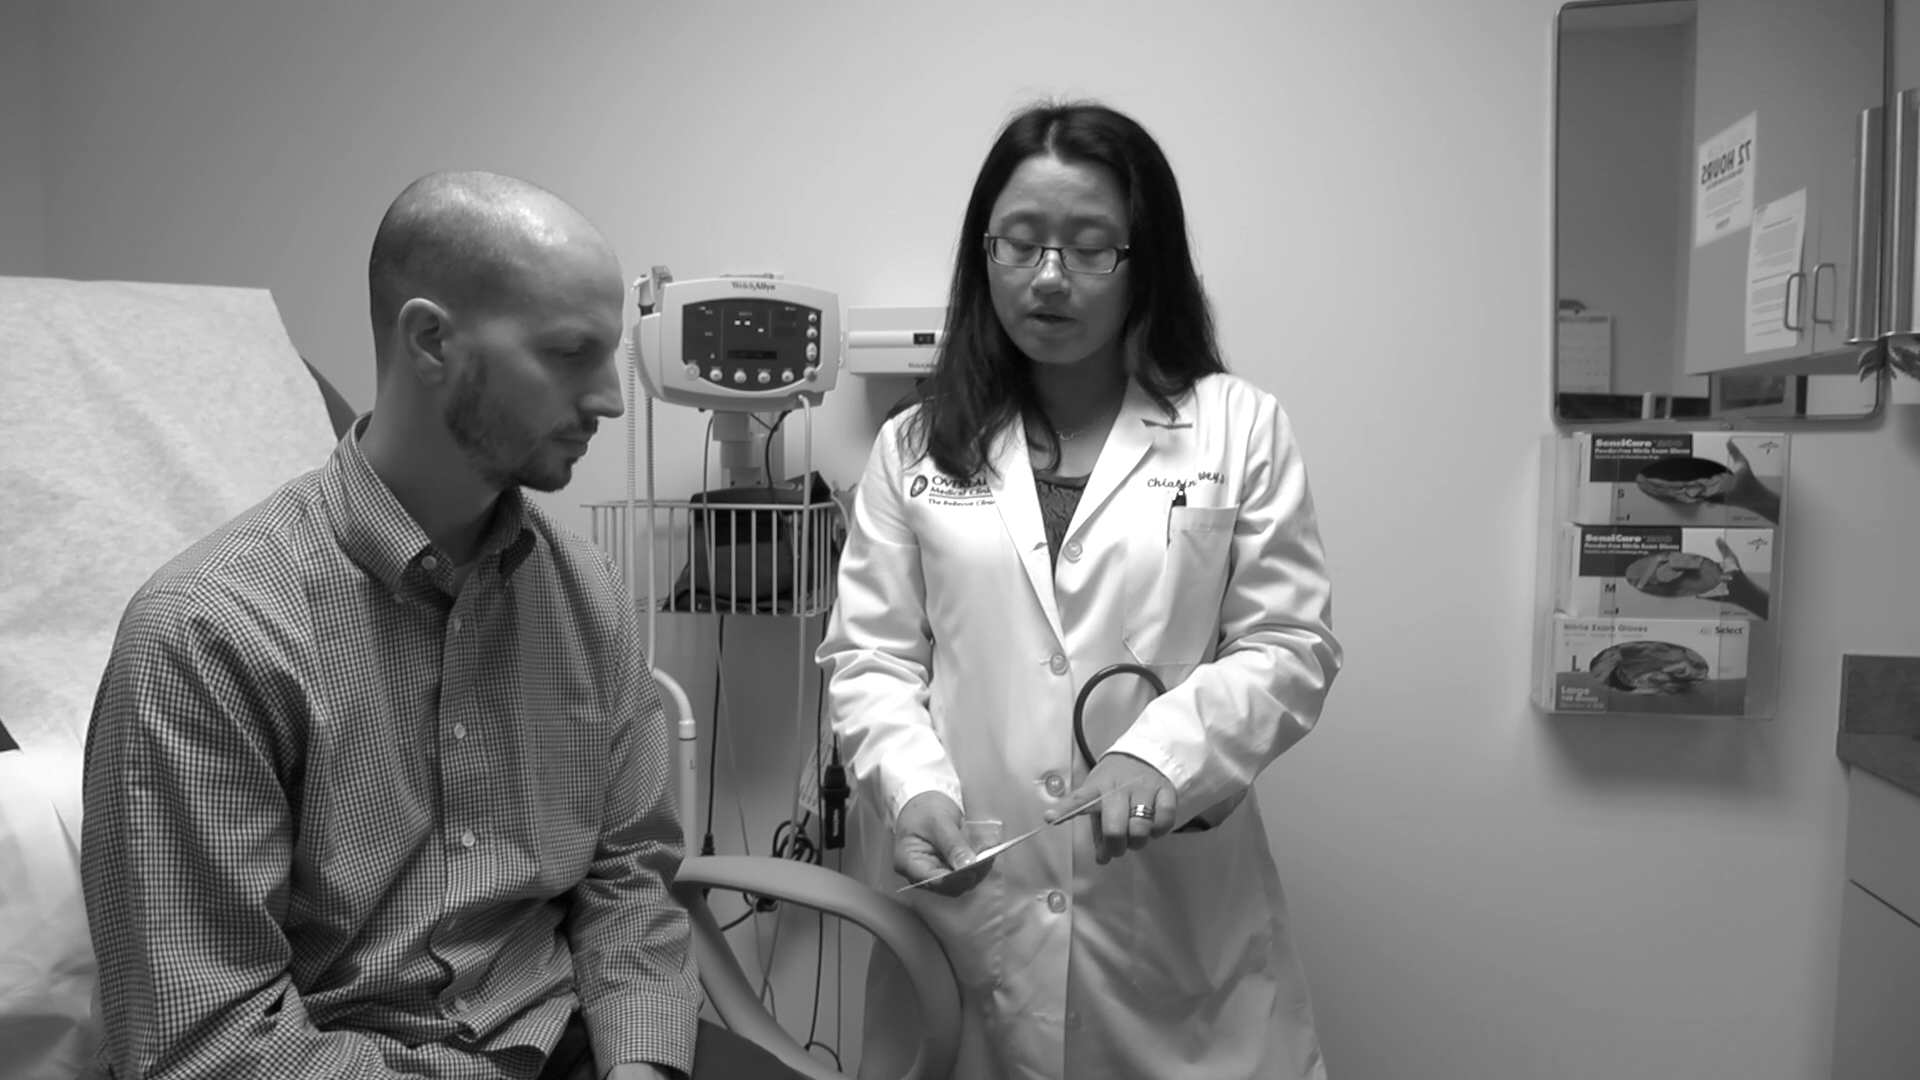 Dr. Wey talks about her practice